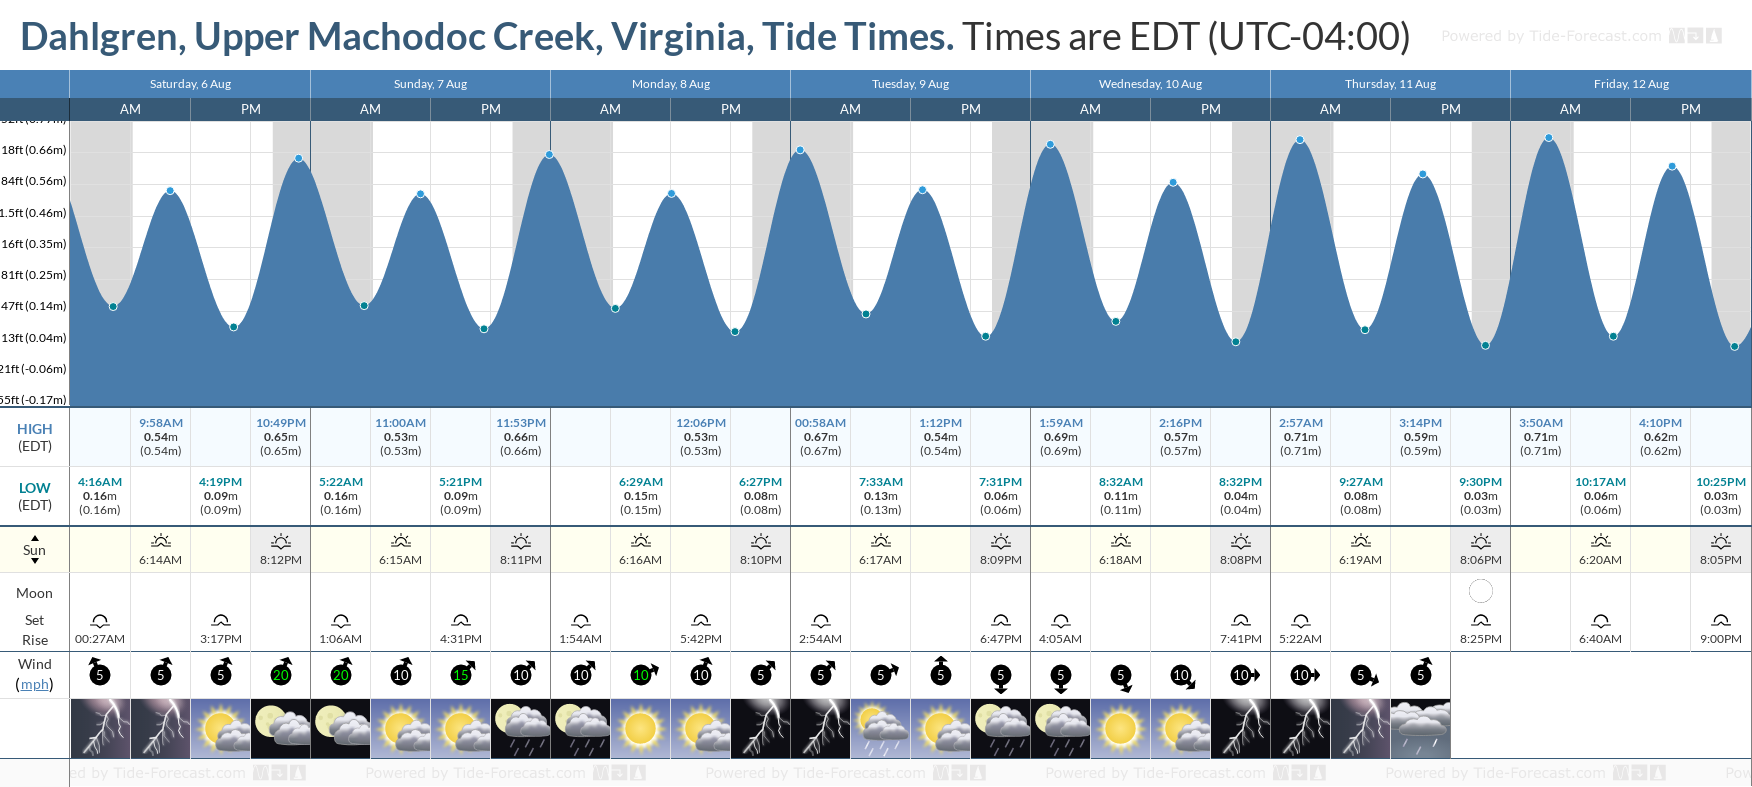 Dahlgren, Upper Machodoc Creek, Virginia Tide Chart including high and low tide tide times for the next 7 days